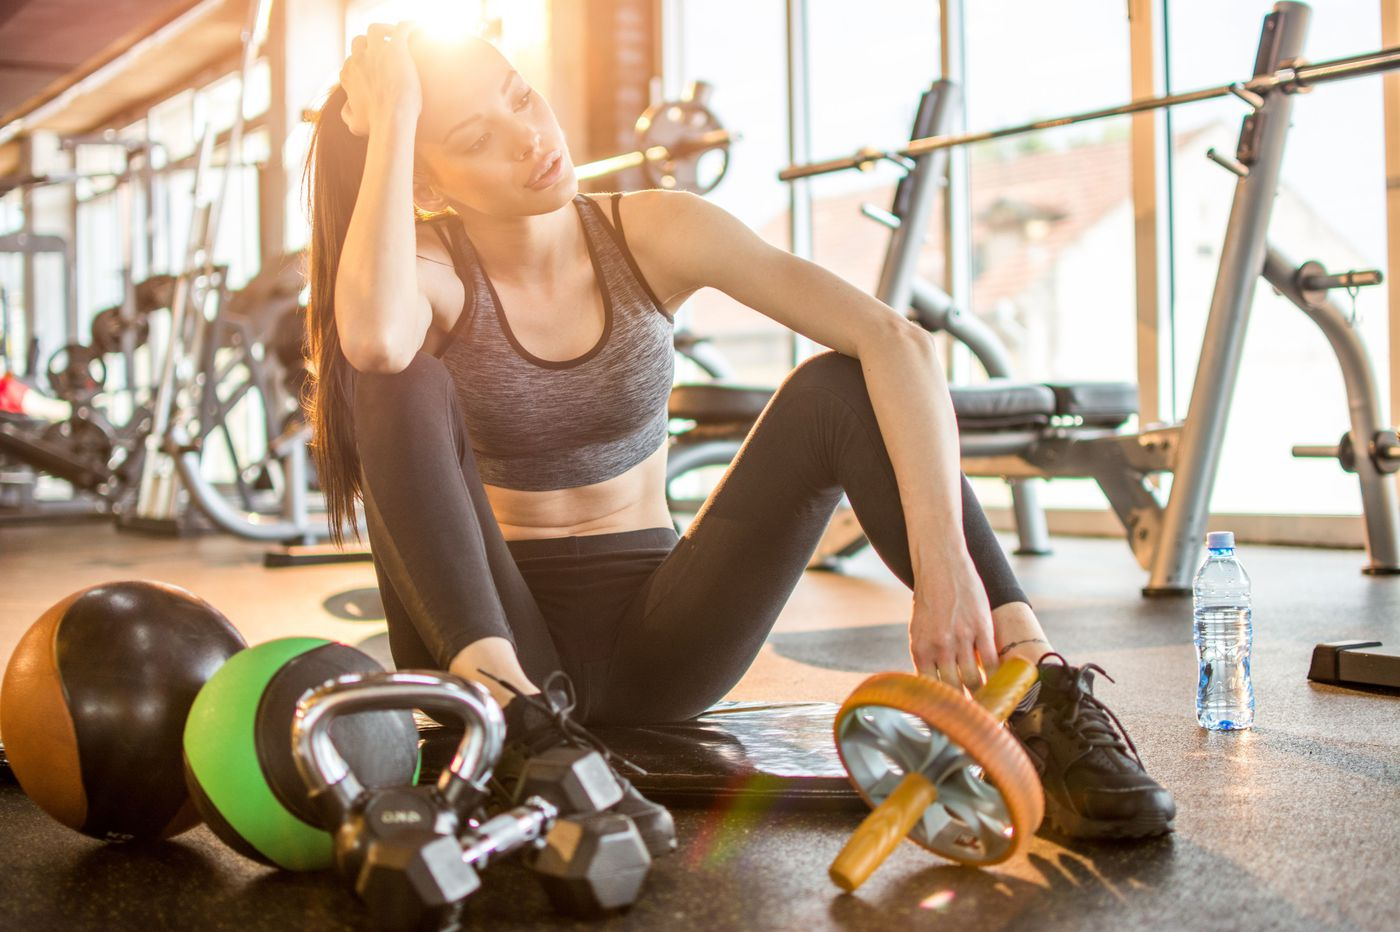 How important is the 'after-burn' transition from exercise to rest?